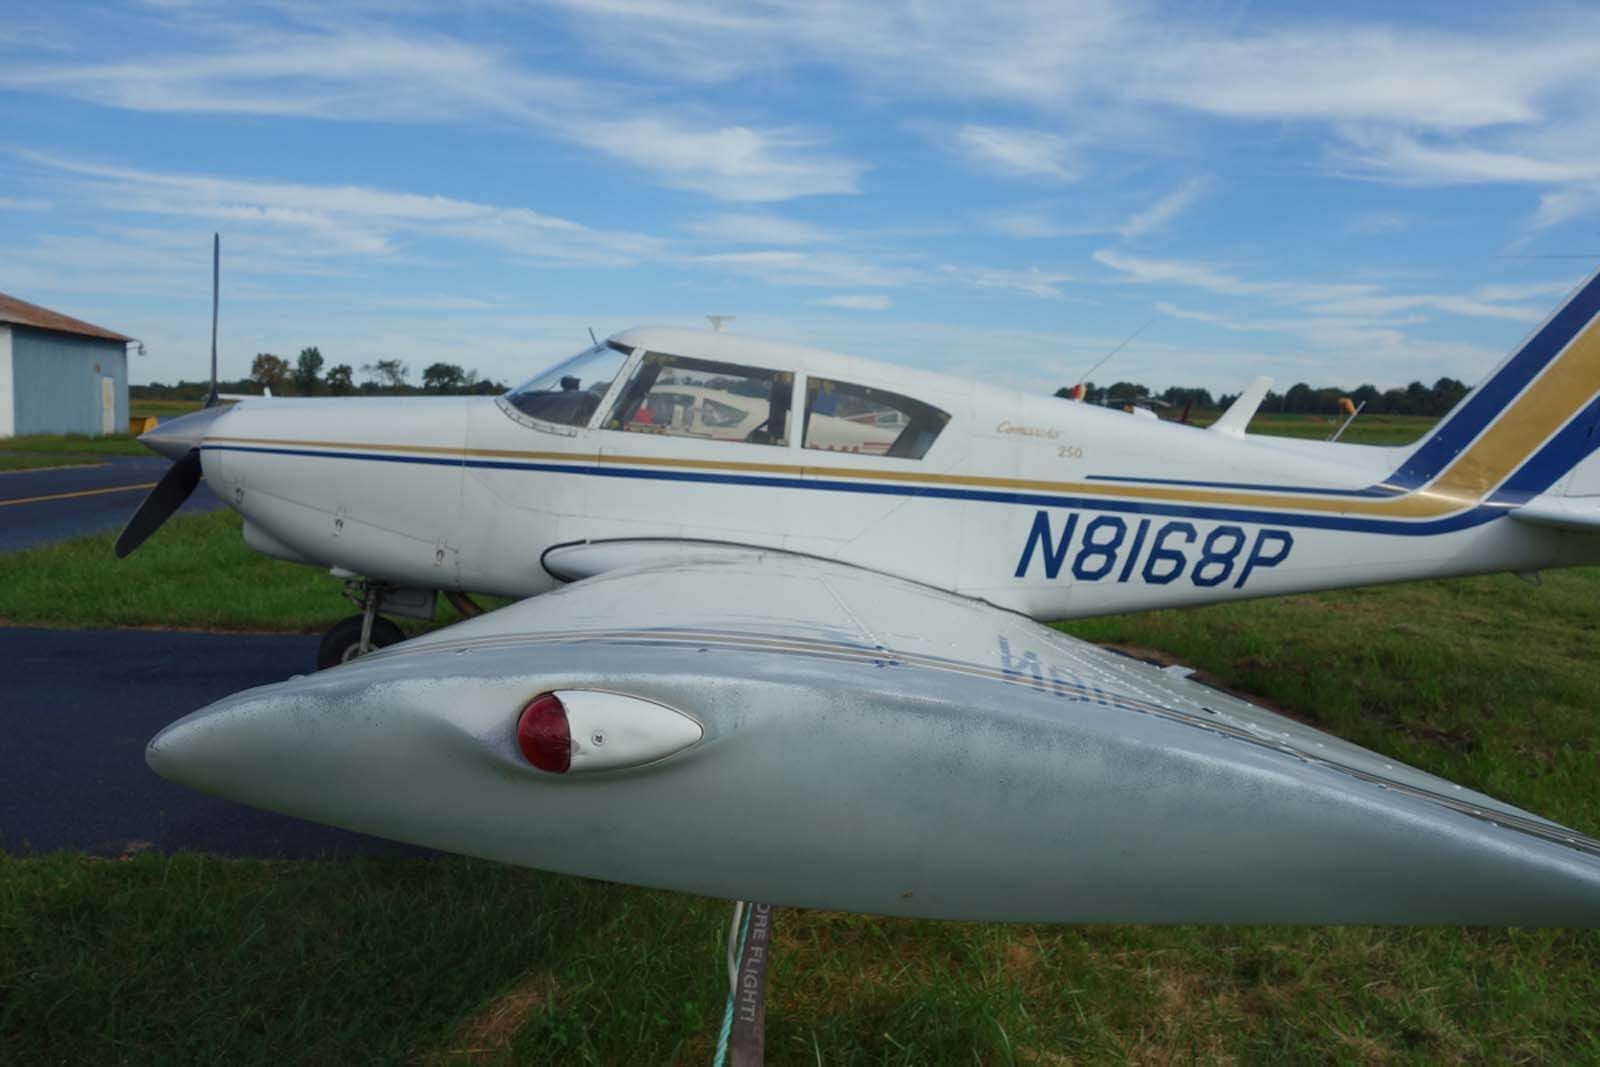 1963 Piper 250 Commanche – FOR SALE at Princeton Airport - Contact Ken Nierenberg at 609-731-4628[